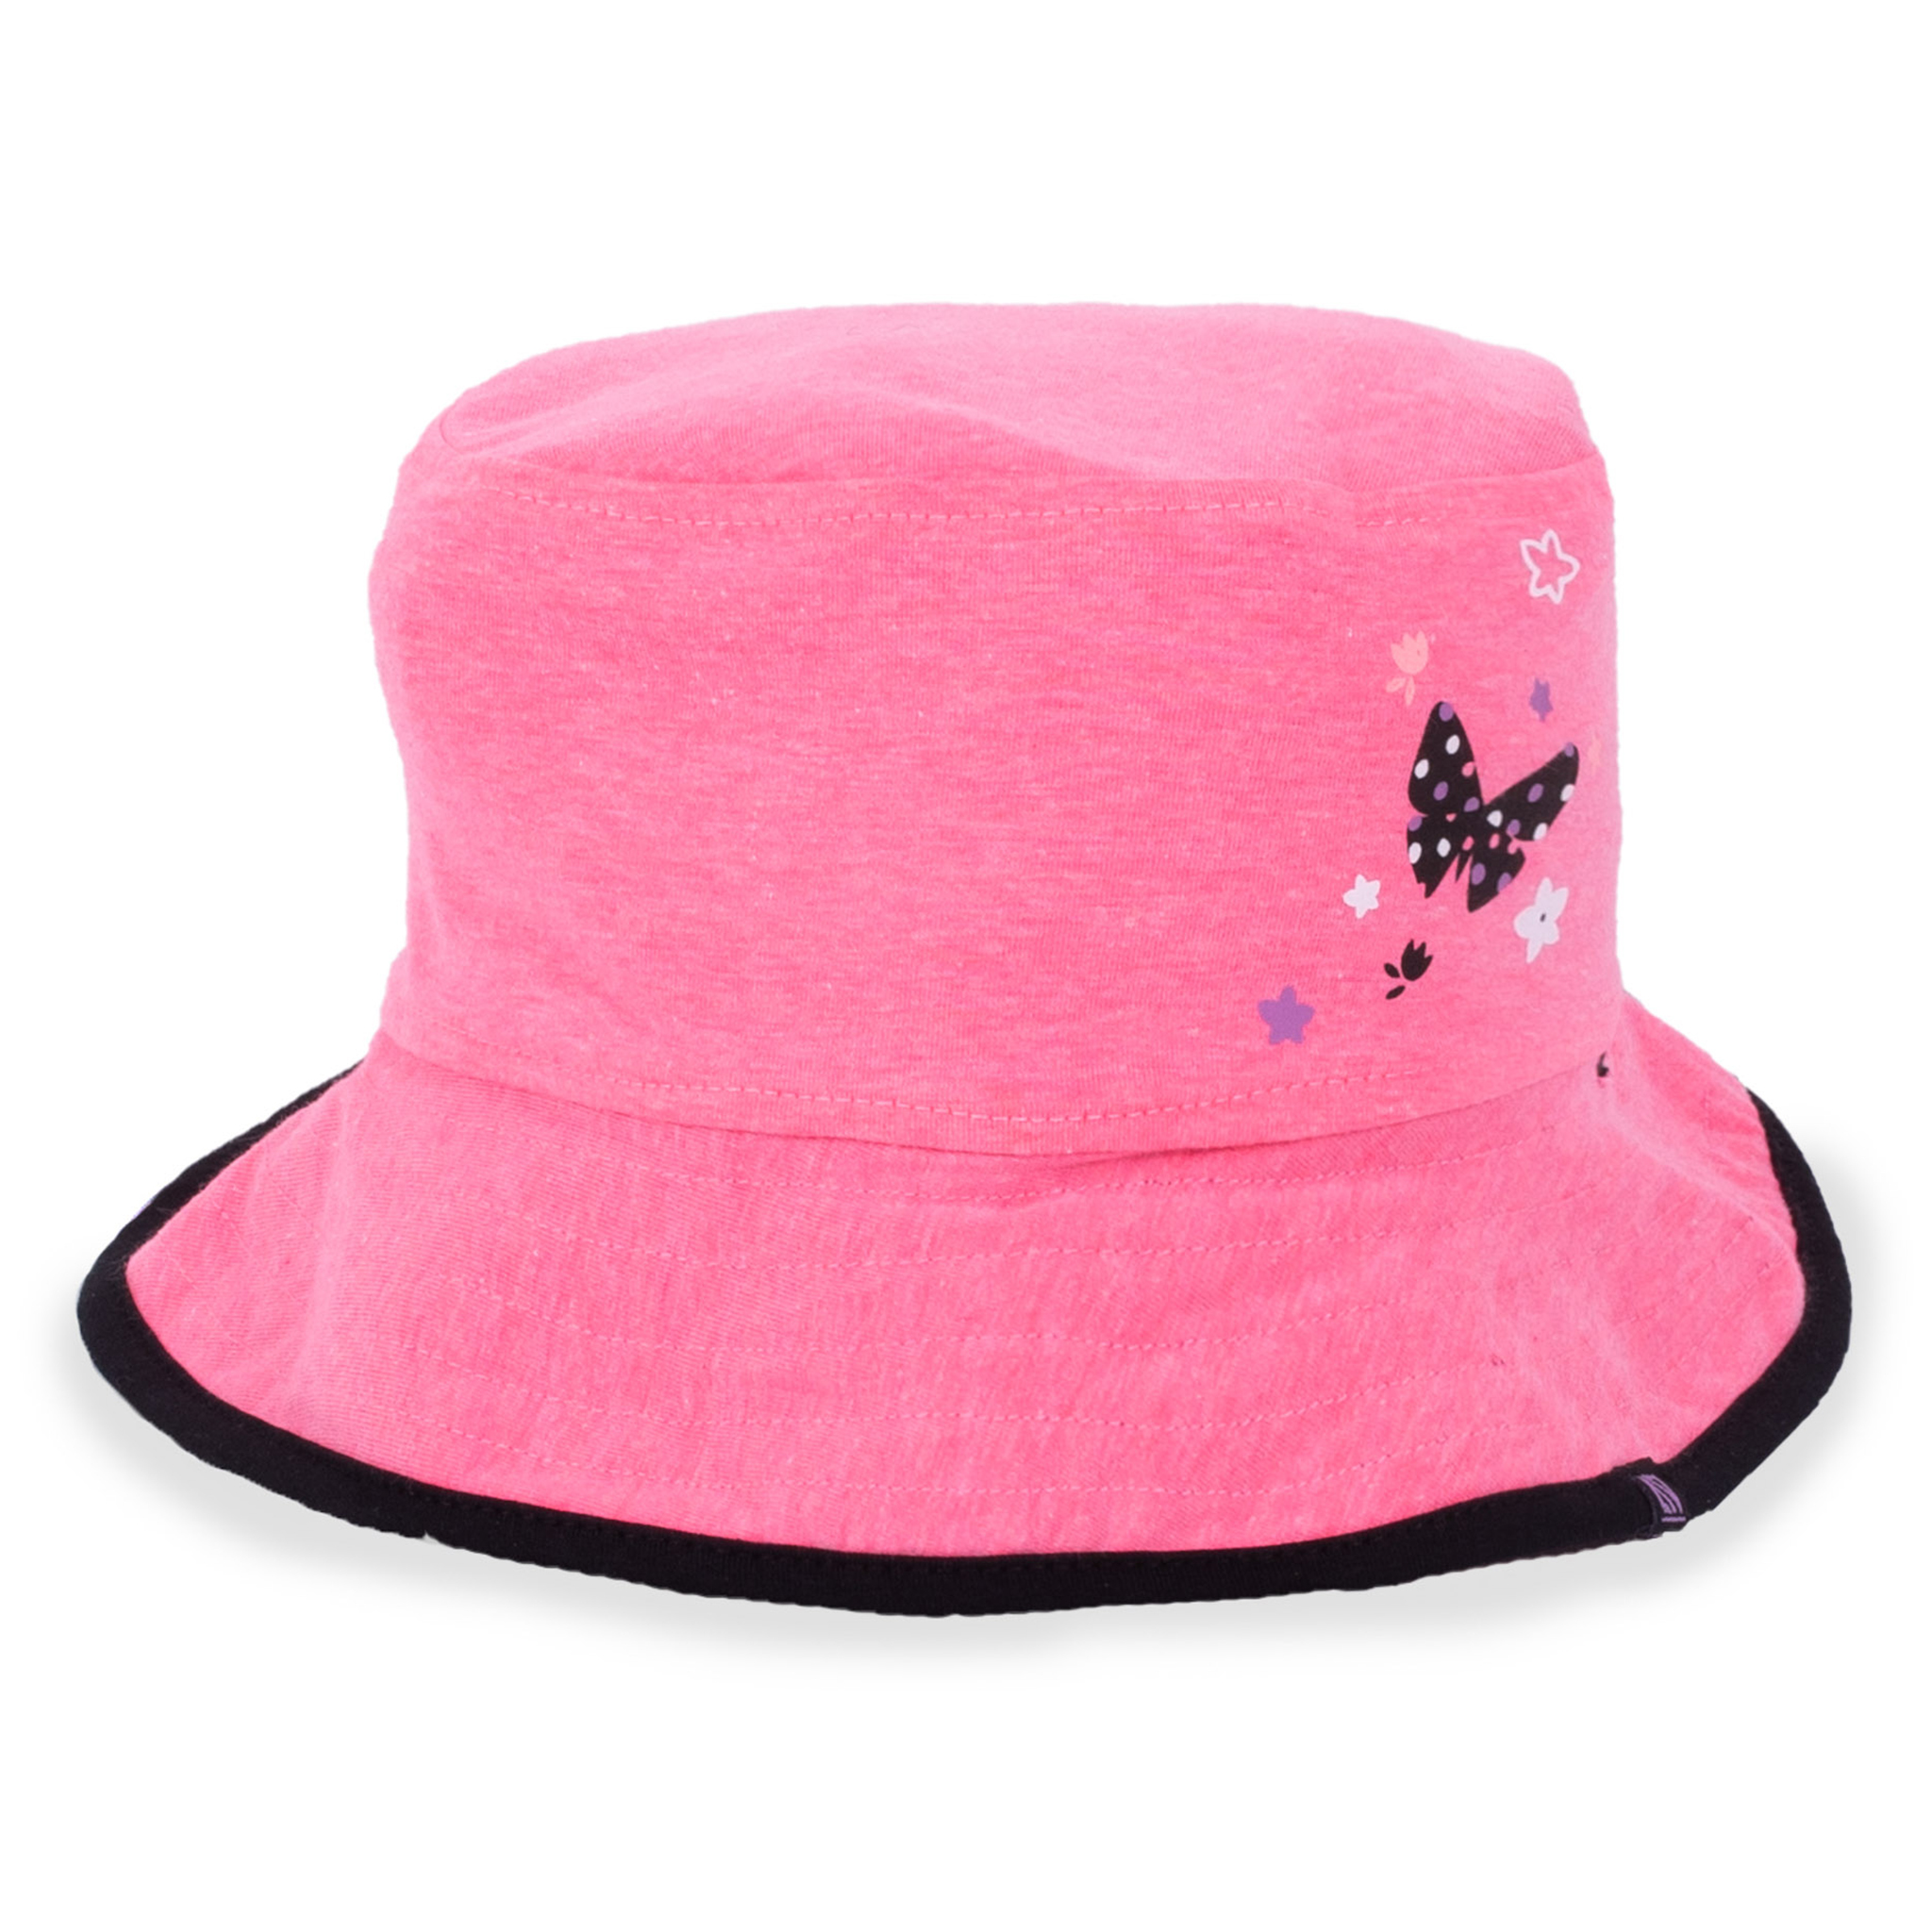 Reversible hat - Pink - Girls